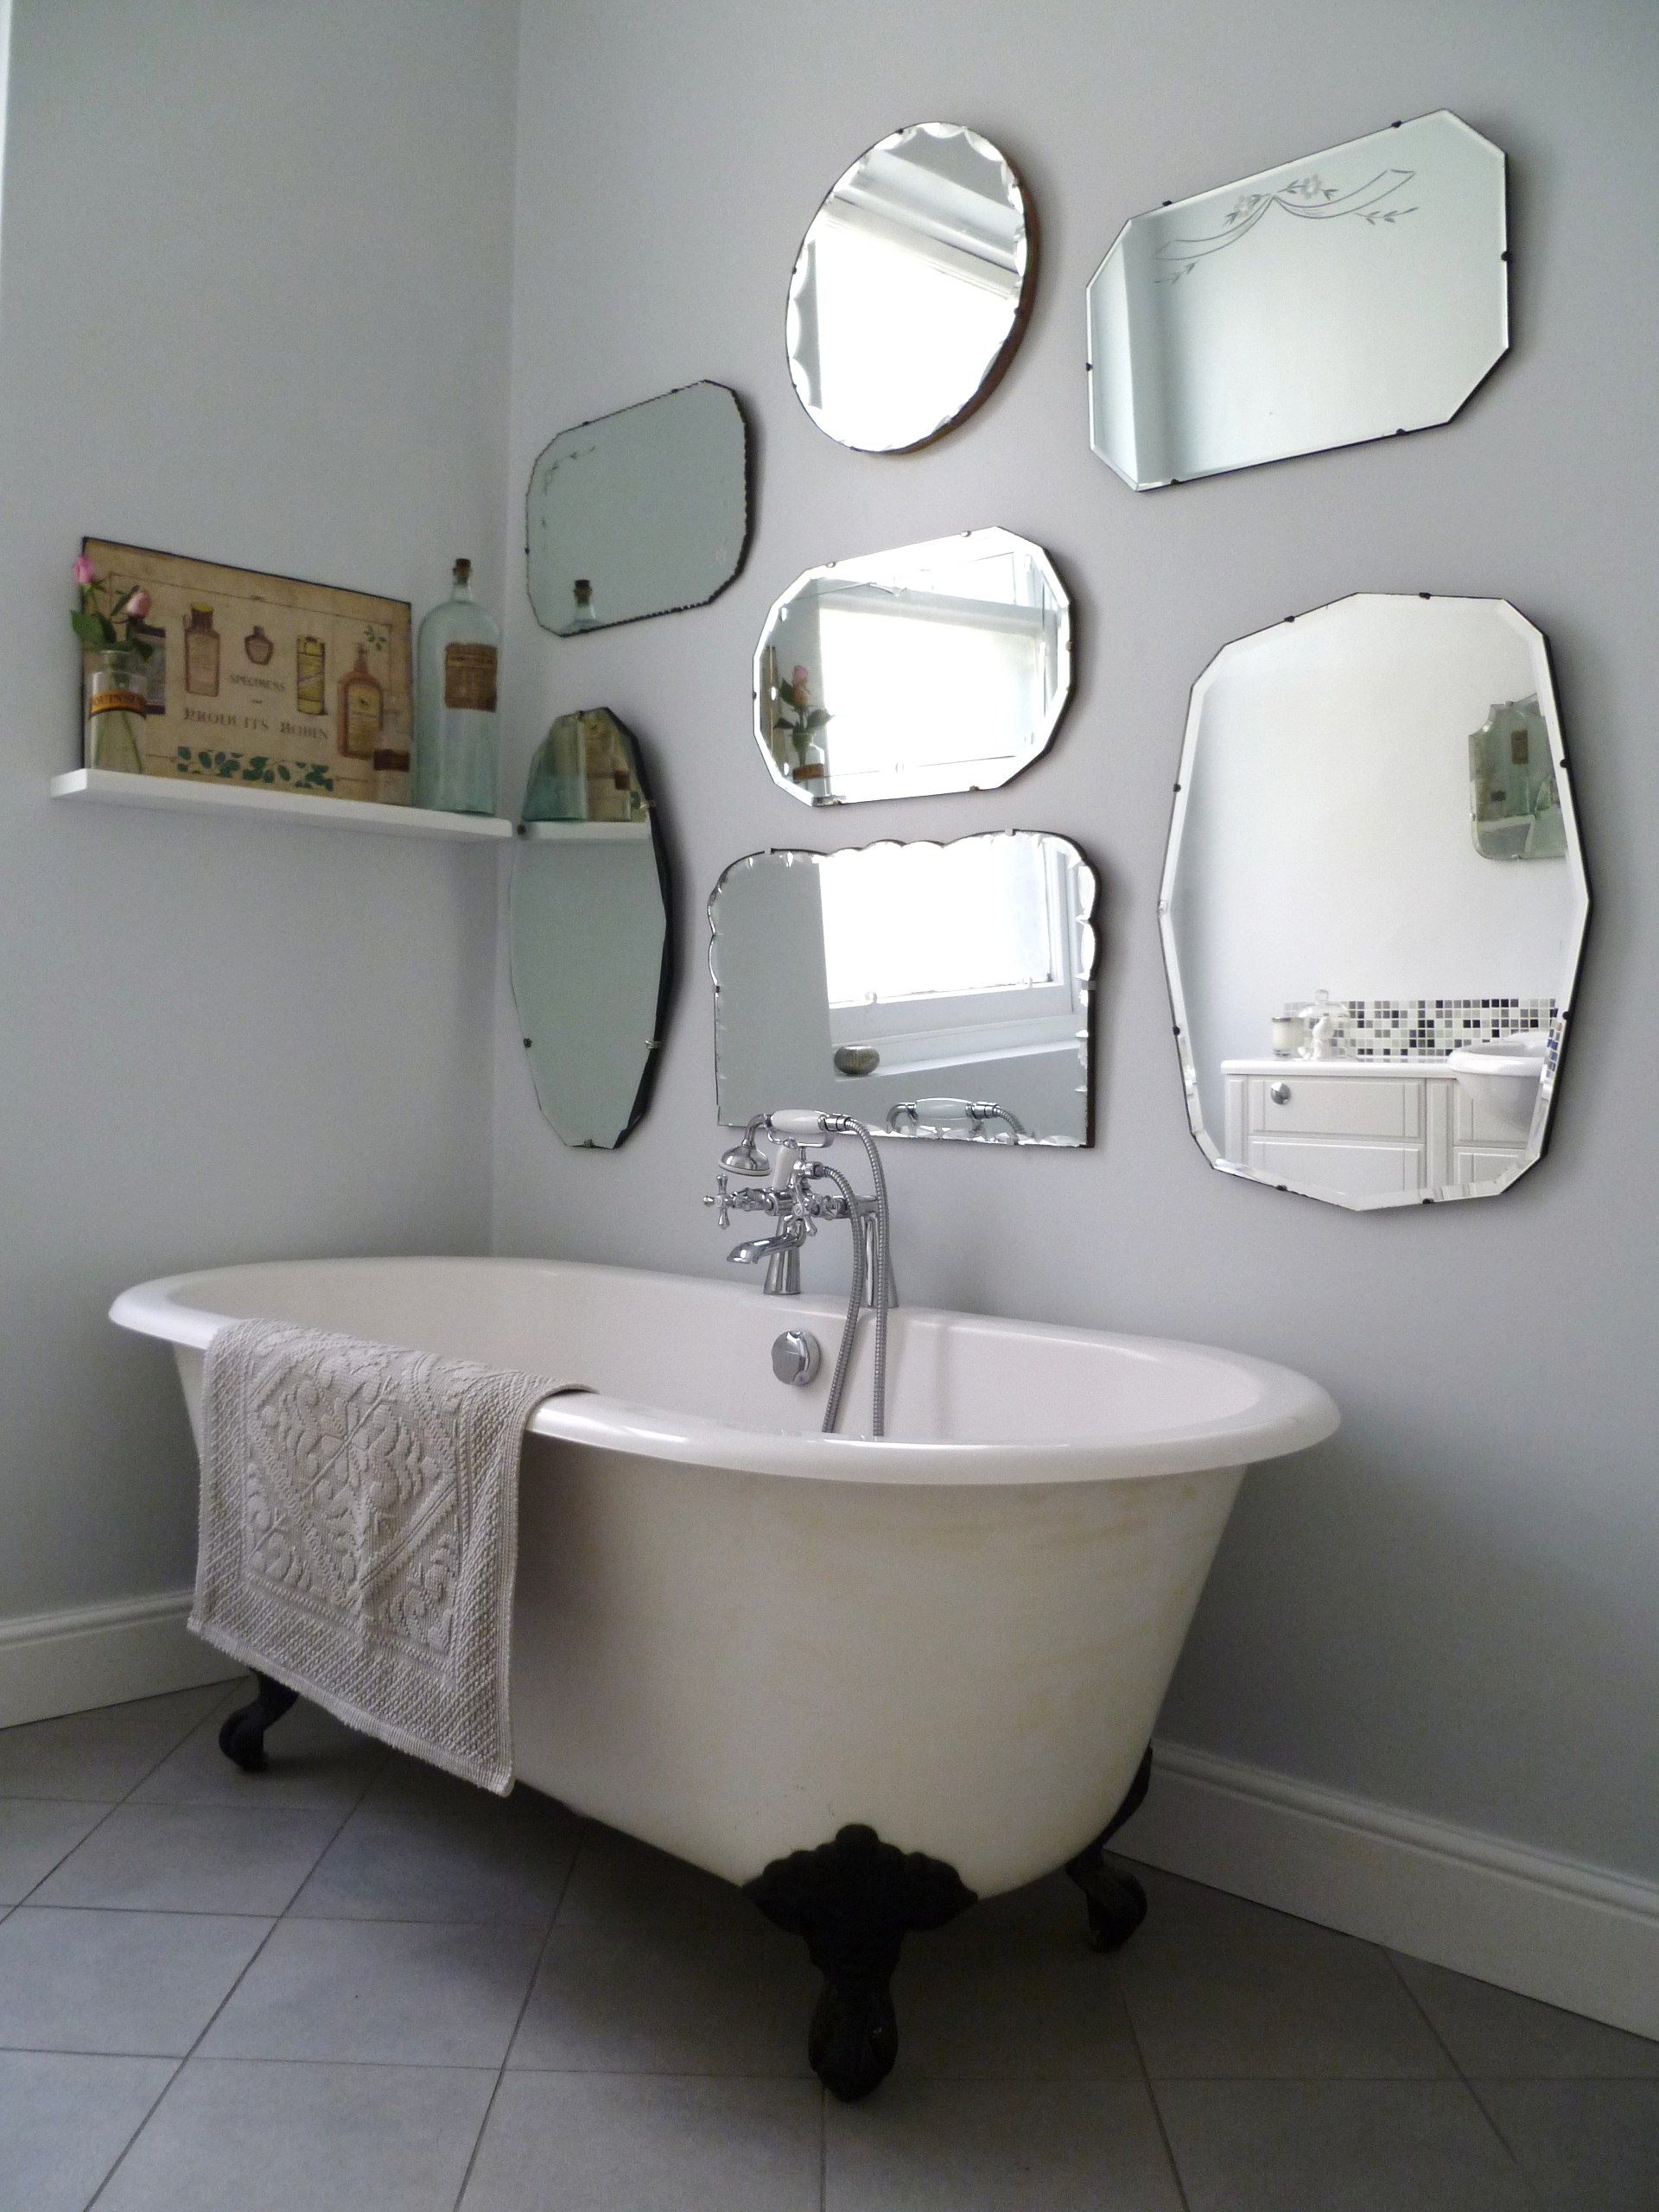 How To Hang A Display Of Vintage Mirrors Mirror Walls Grey And With Small Antique Wall Mirrors (View 4 of 15)